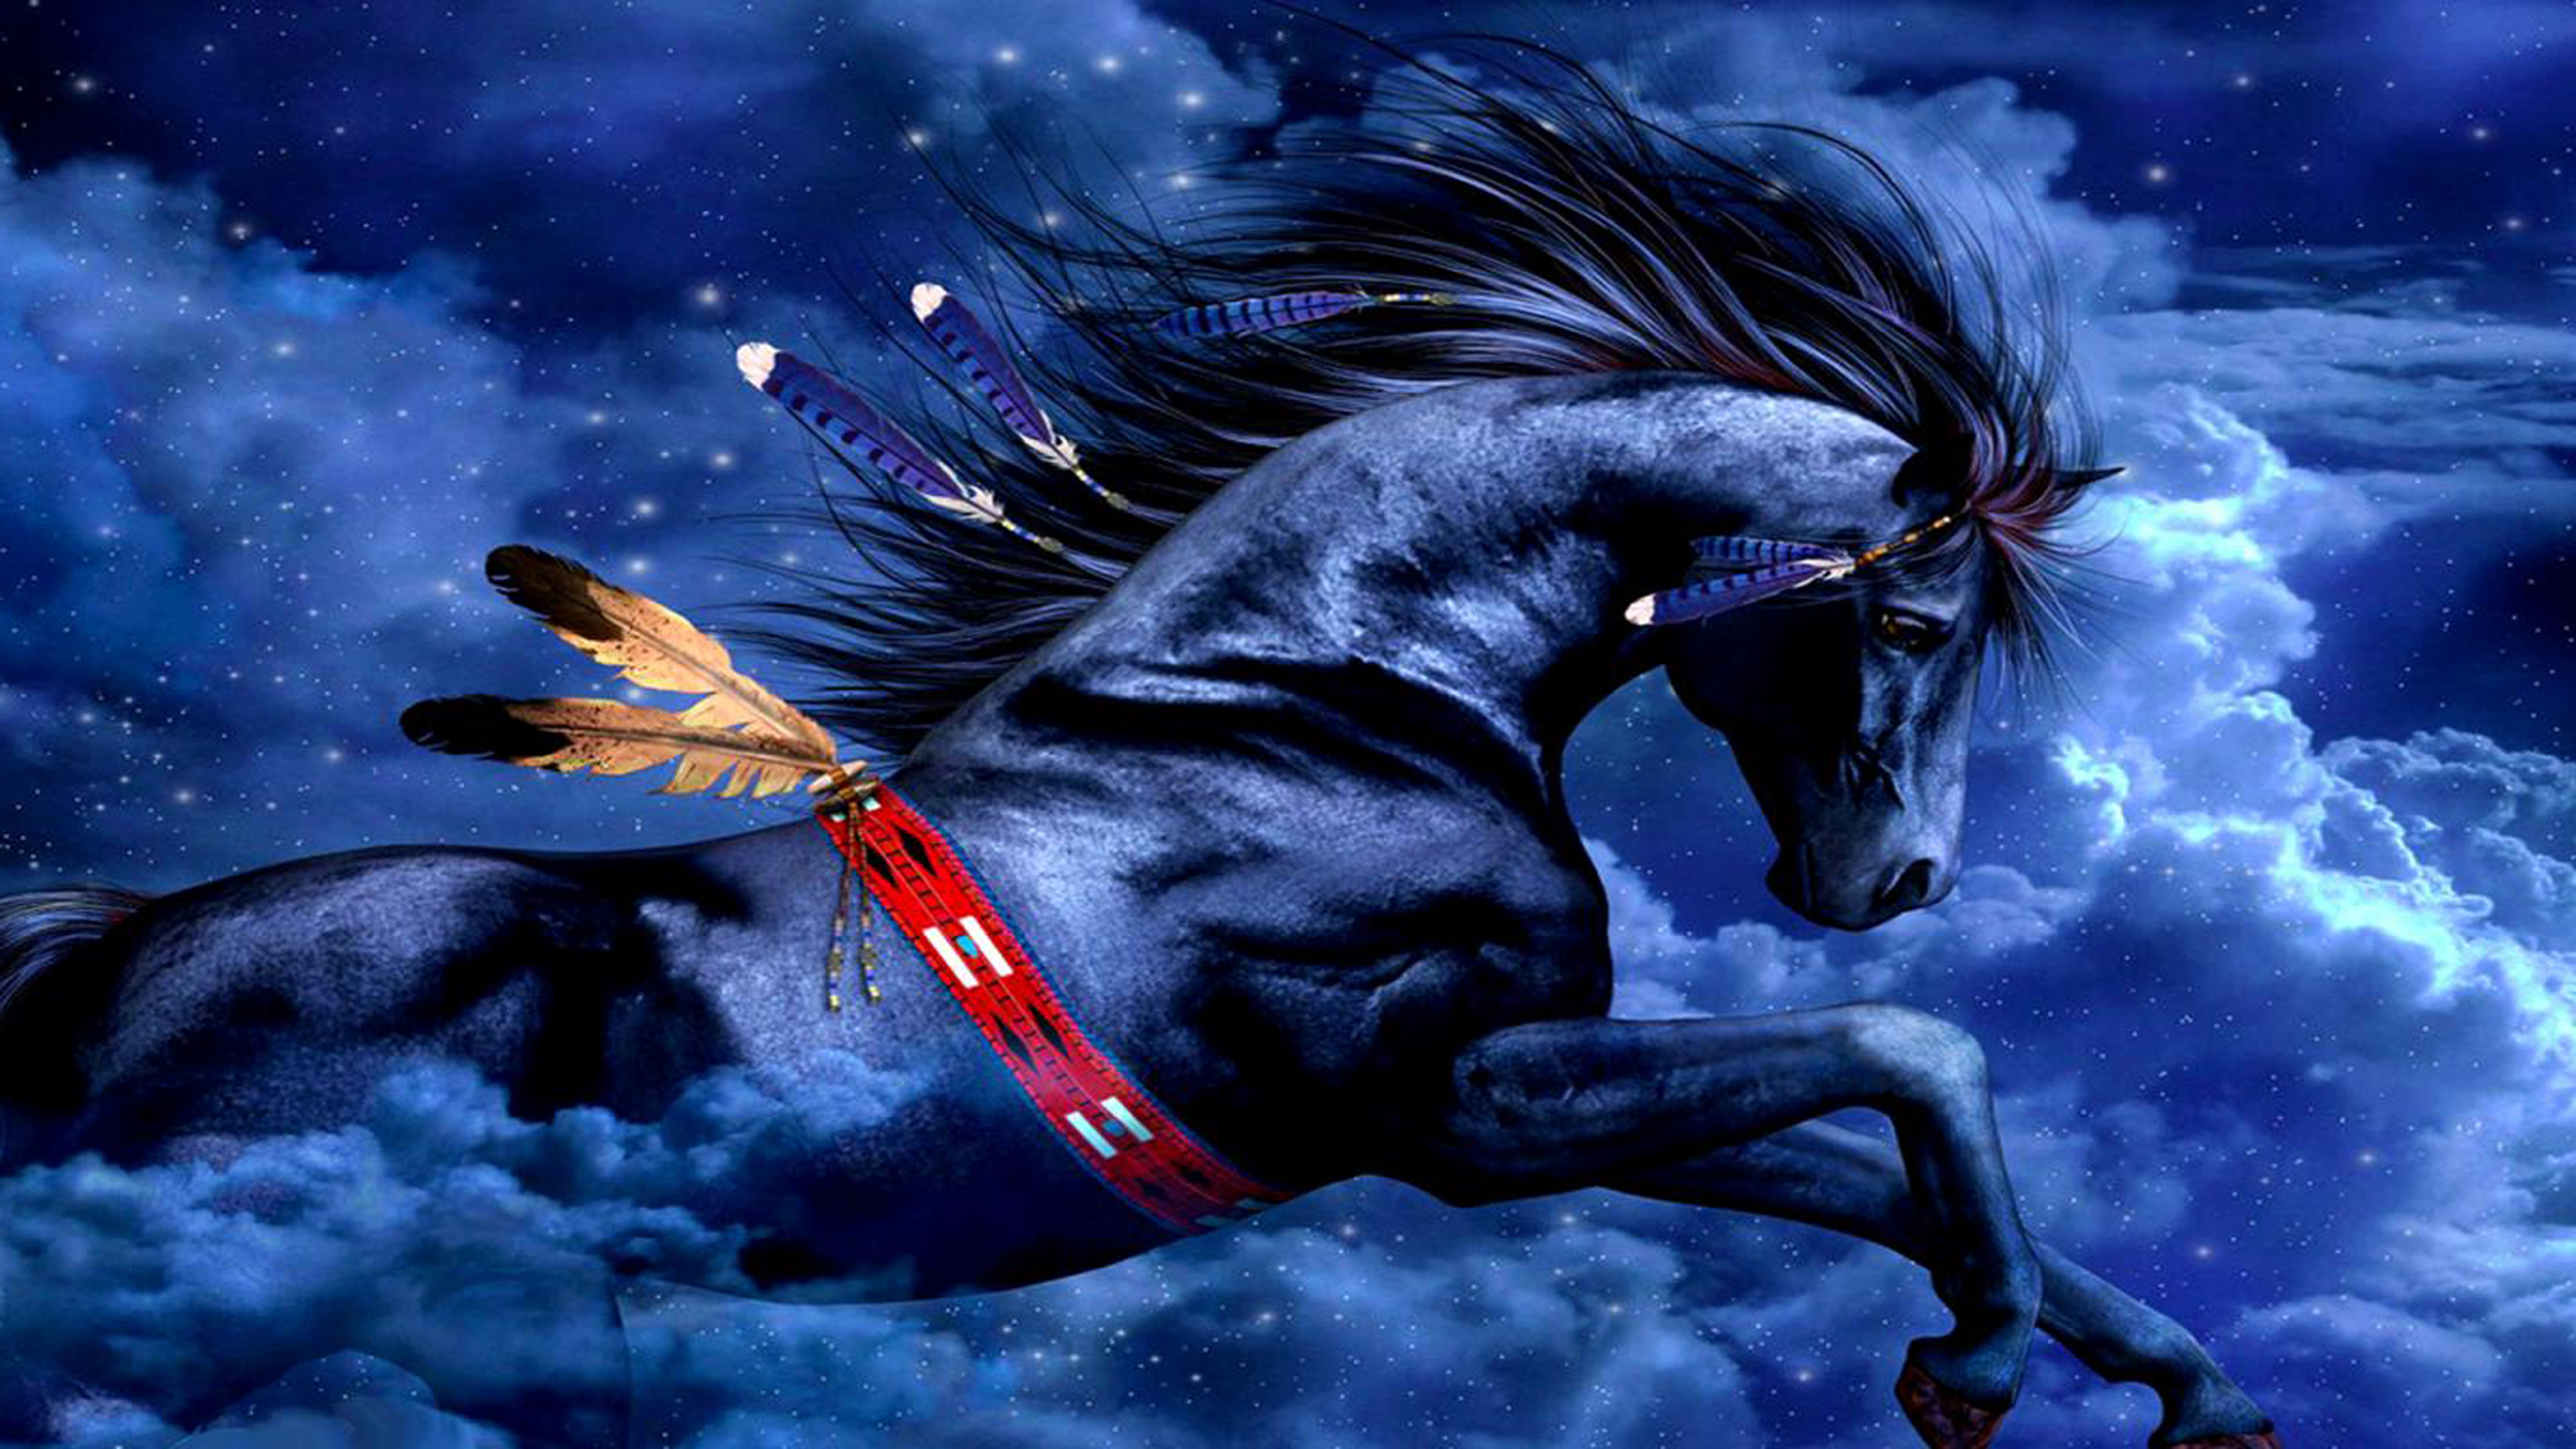 India Flag Wallpaper 3d Fantasy Digital Art Blue Indian Horse Wallpaper Design